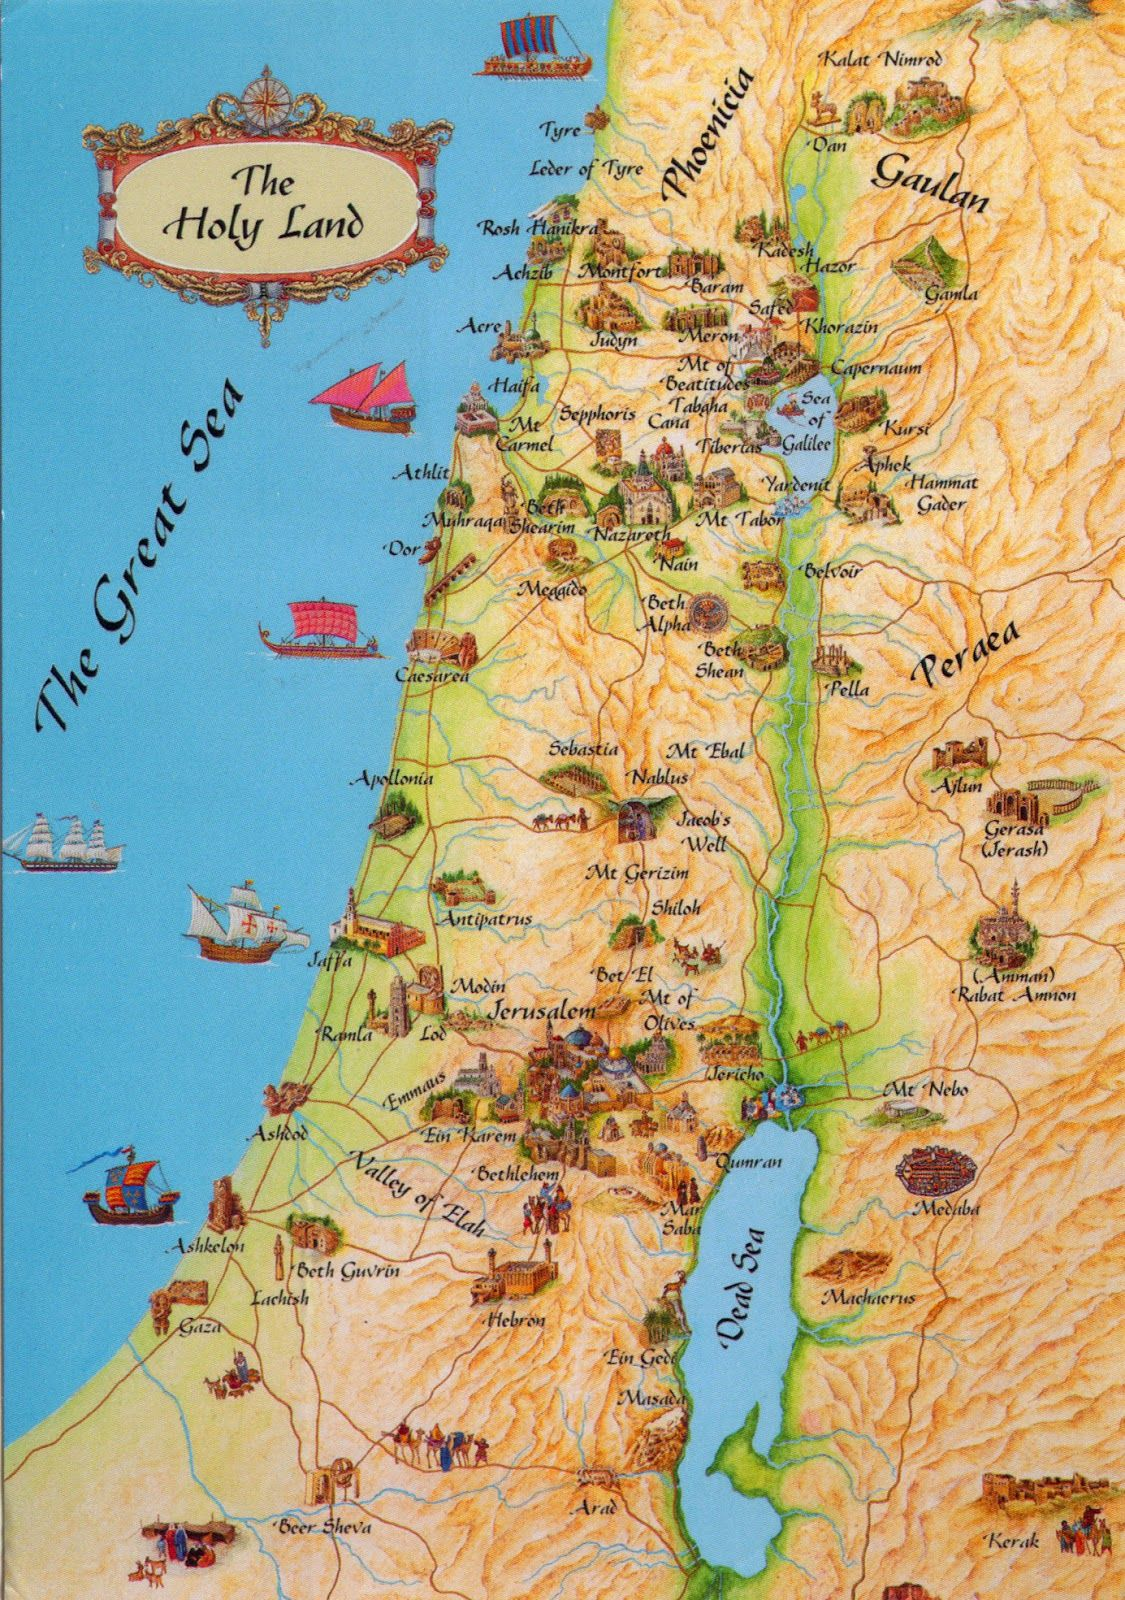 Map of biblical israel world come to my home 0315 israel the map of biblical israel world come to my home 0315 israel the map of the holy land gumiabroncs